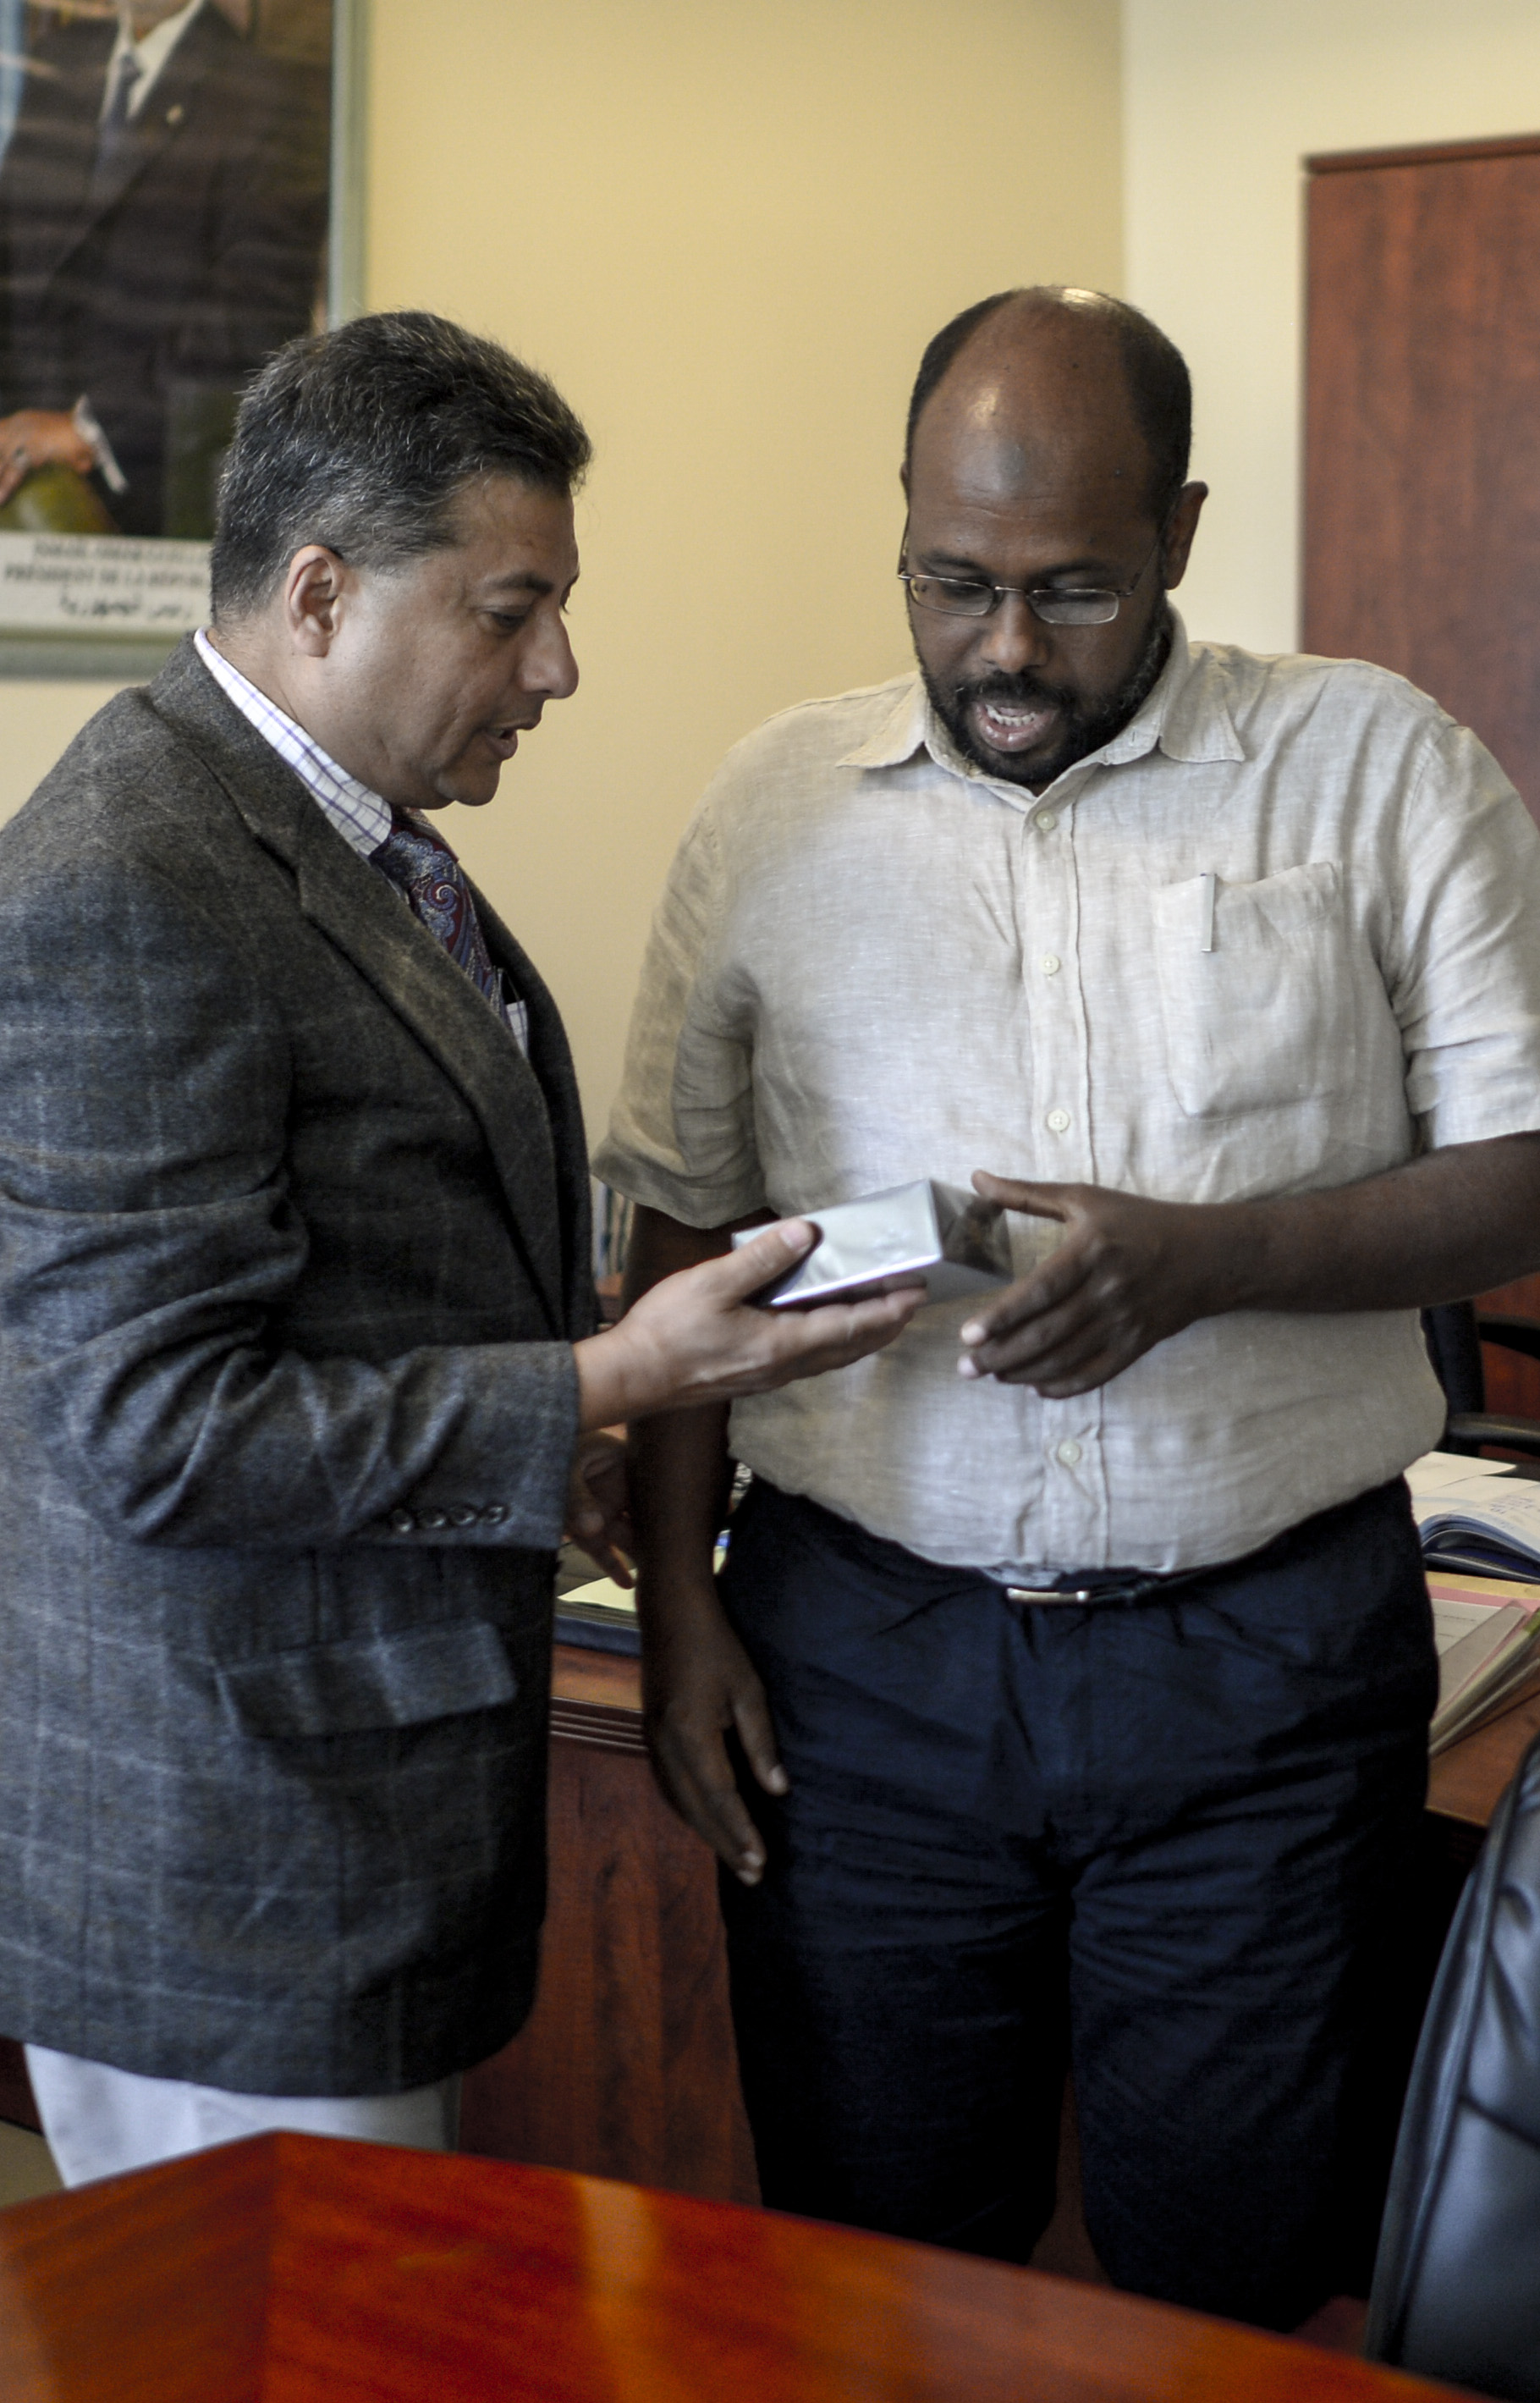 U.S. Navy Cmdr. Abuhena Saifulislam, deputy command chaplain for U.S. Africa Command, meets with Mohamed Houssein Doualeh, Djibouti's deputy minister of Muslim affairs & charitable assets in downtown Djibouti City, April 11, 2017. Regular engagements with Muslim leaders in Djibouti and neighboring countries helps to foster positive relationships between the U.S. and Islamic communities in east Africa. (U.S. Air National Guard photo by Staff Sgt. Christian Jadot)